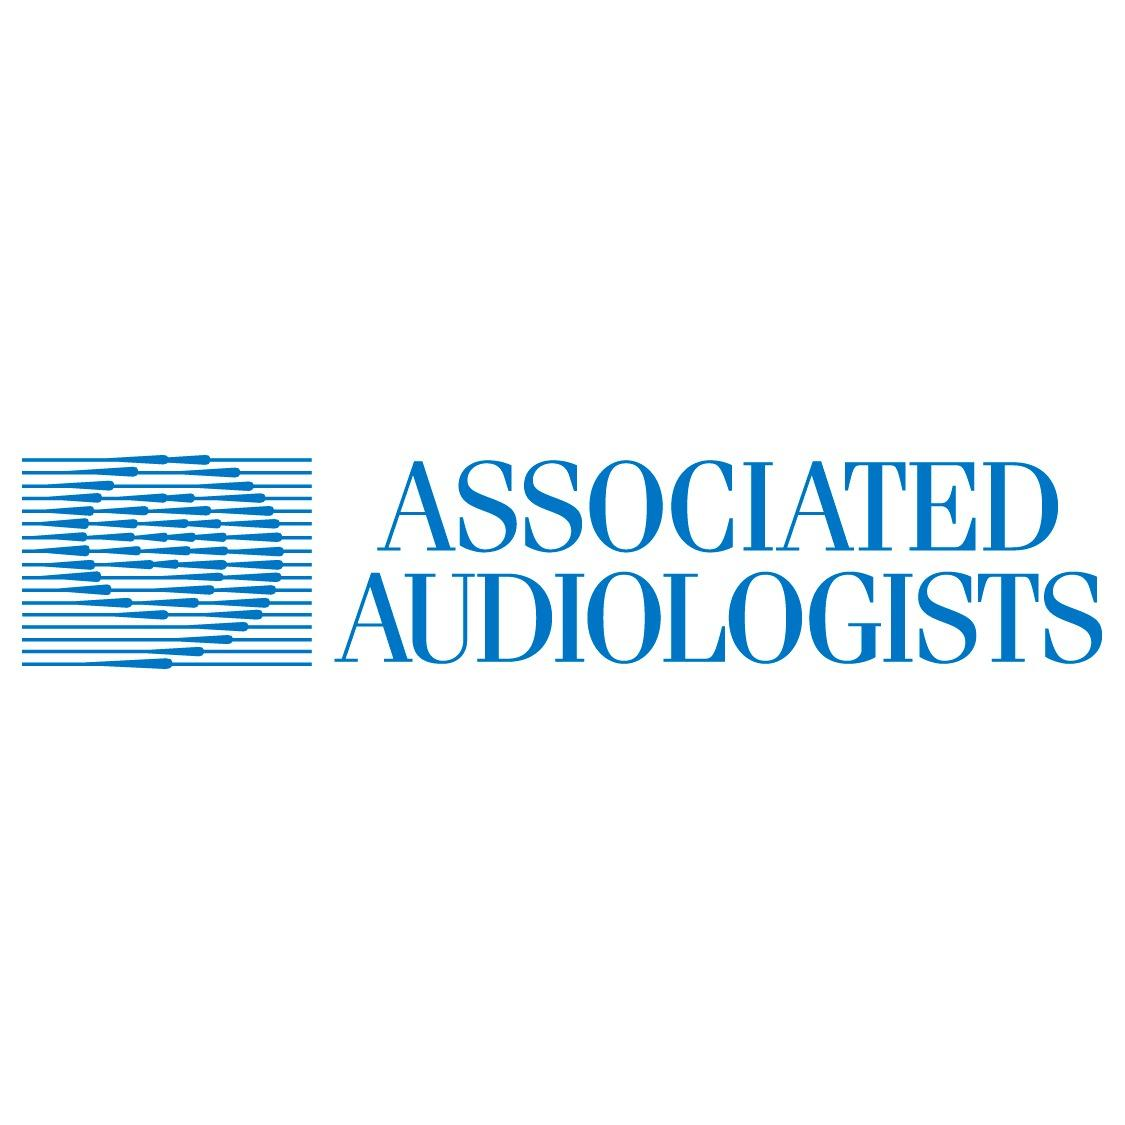 Associated Audiologists - Manhattan, KS - Audiology & Speech